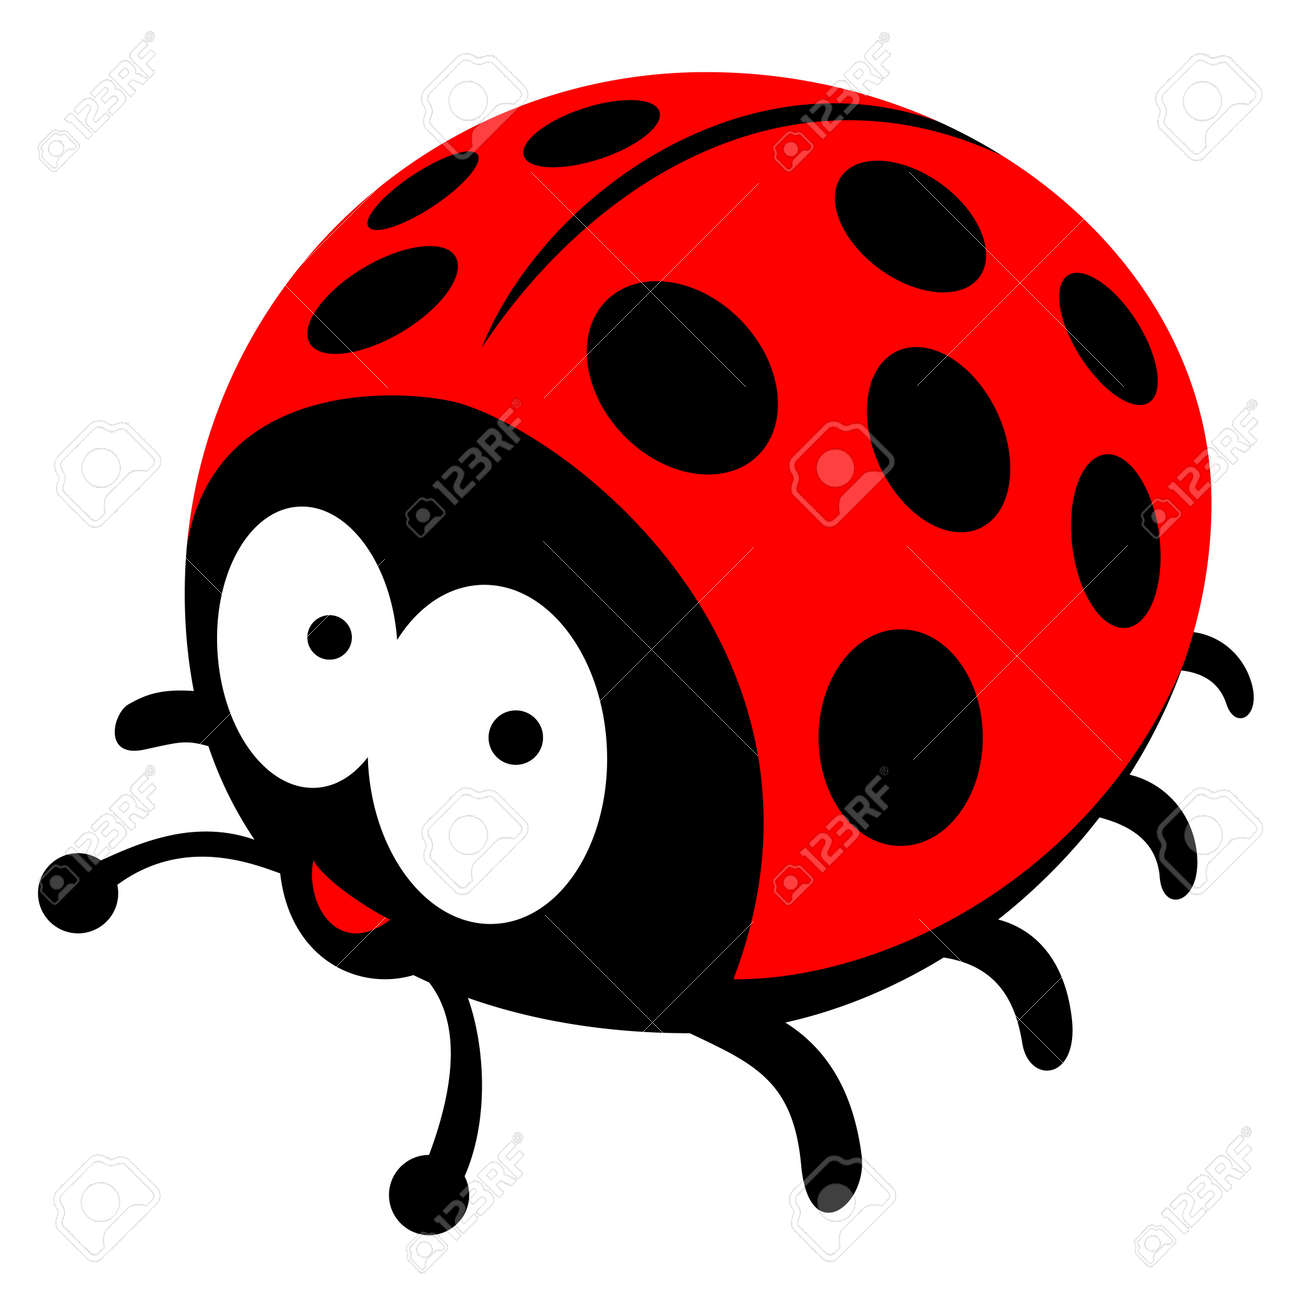 Ladybug Royalty Free Cliparts, Vectors, And Stock Illustration ...